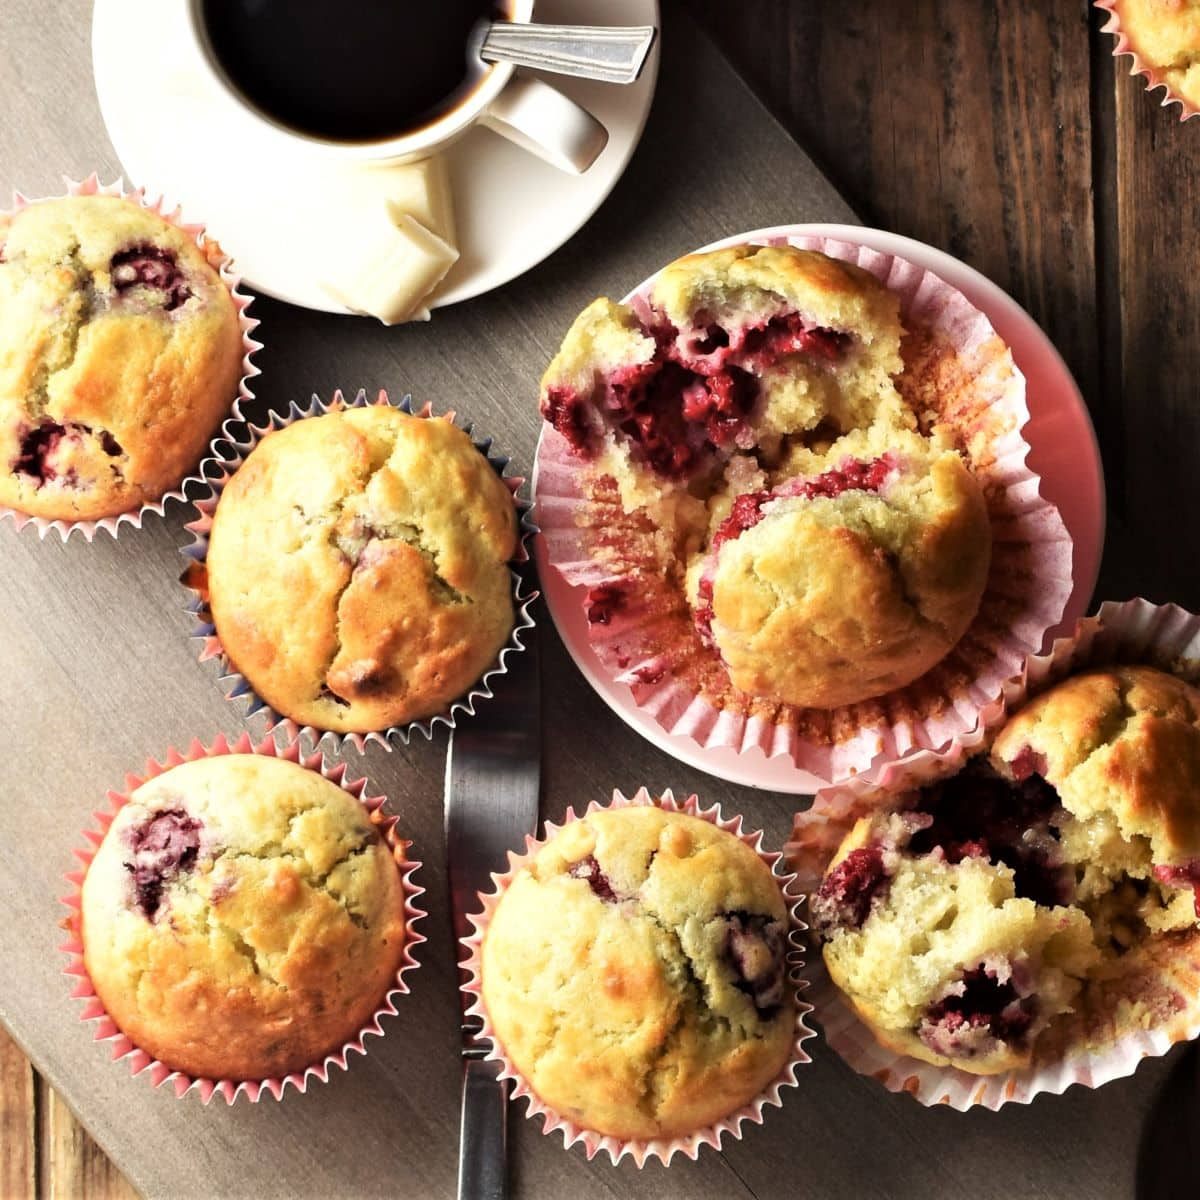 Top down view of raspberry white chocolate muffins in red liners and coffee in white cup.